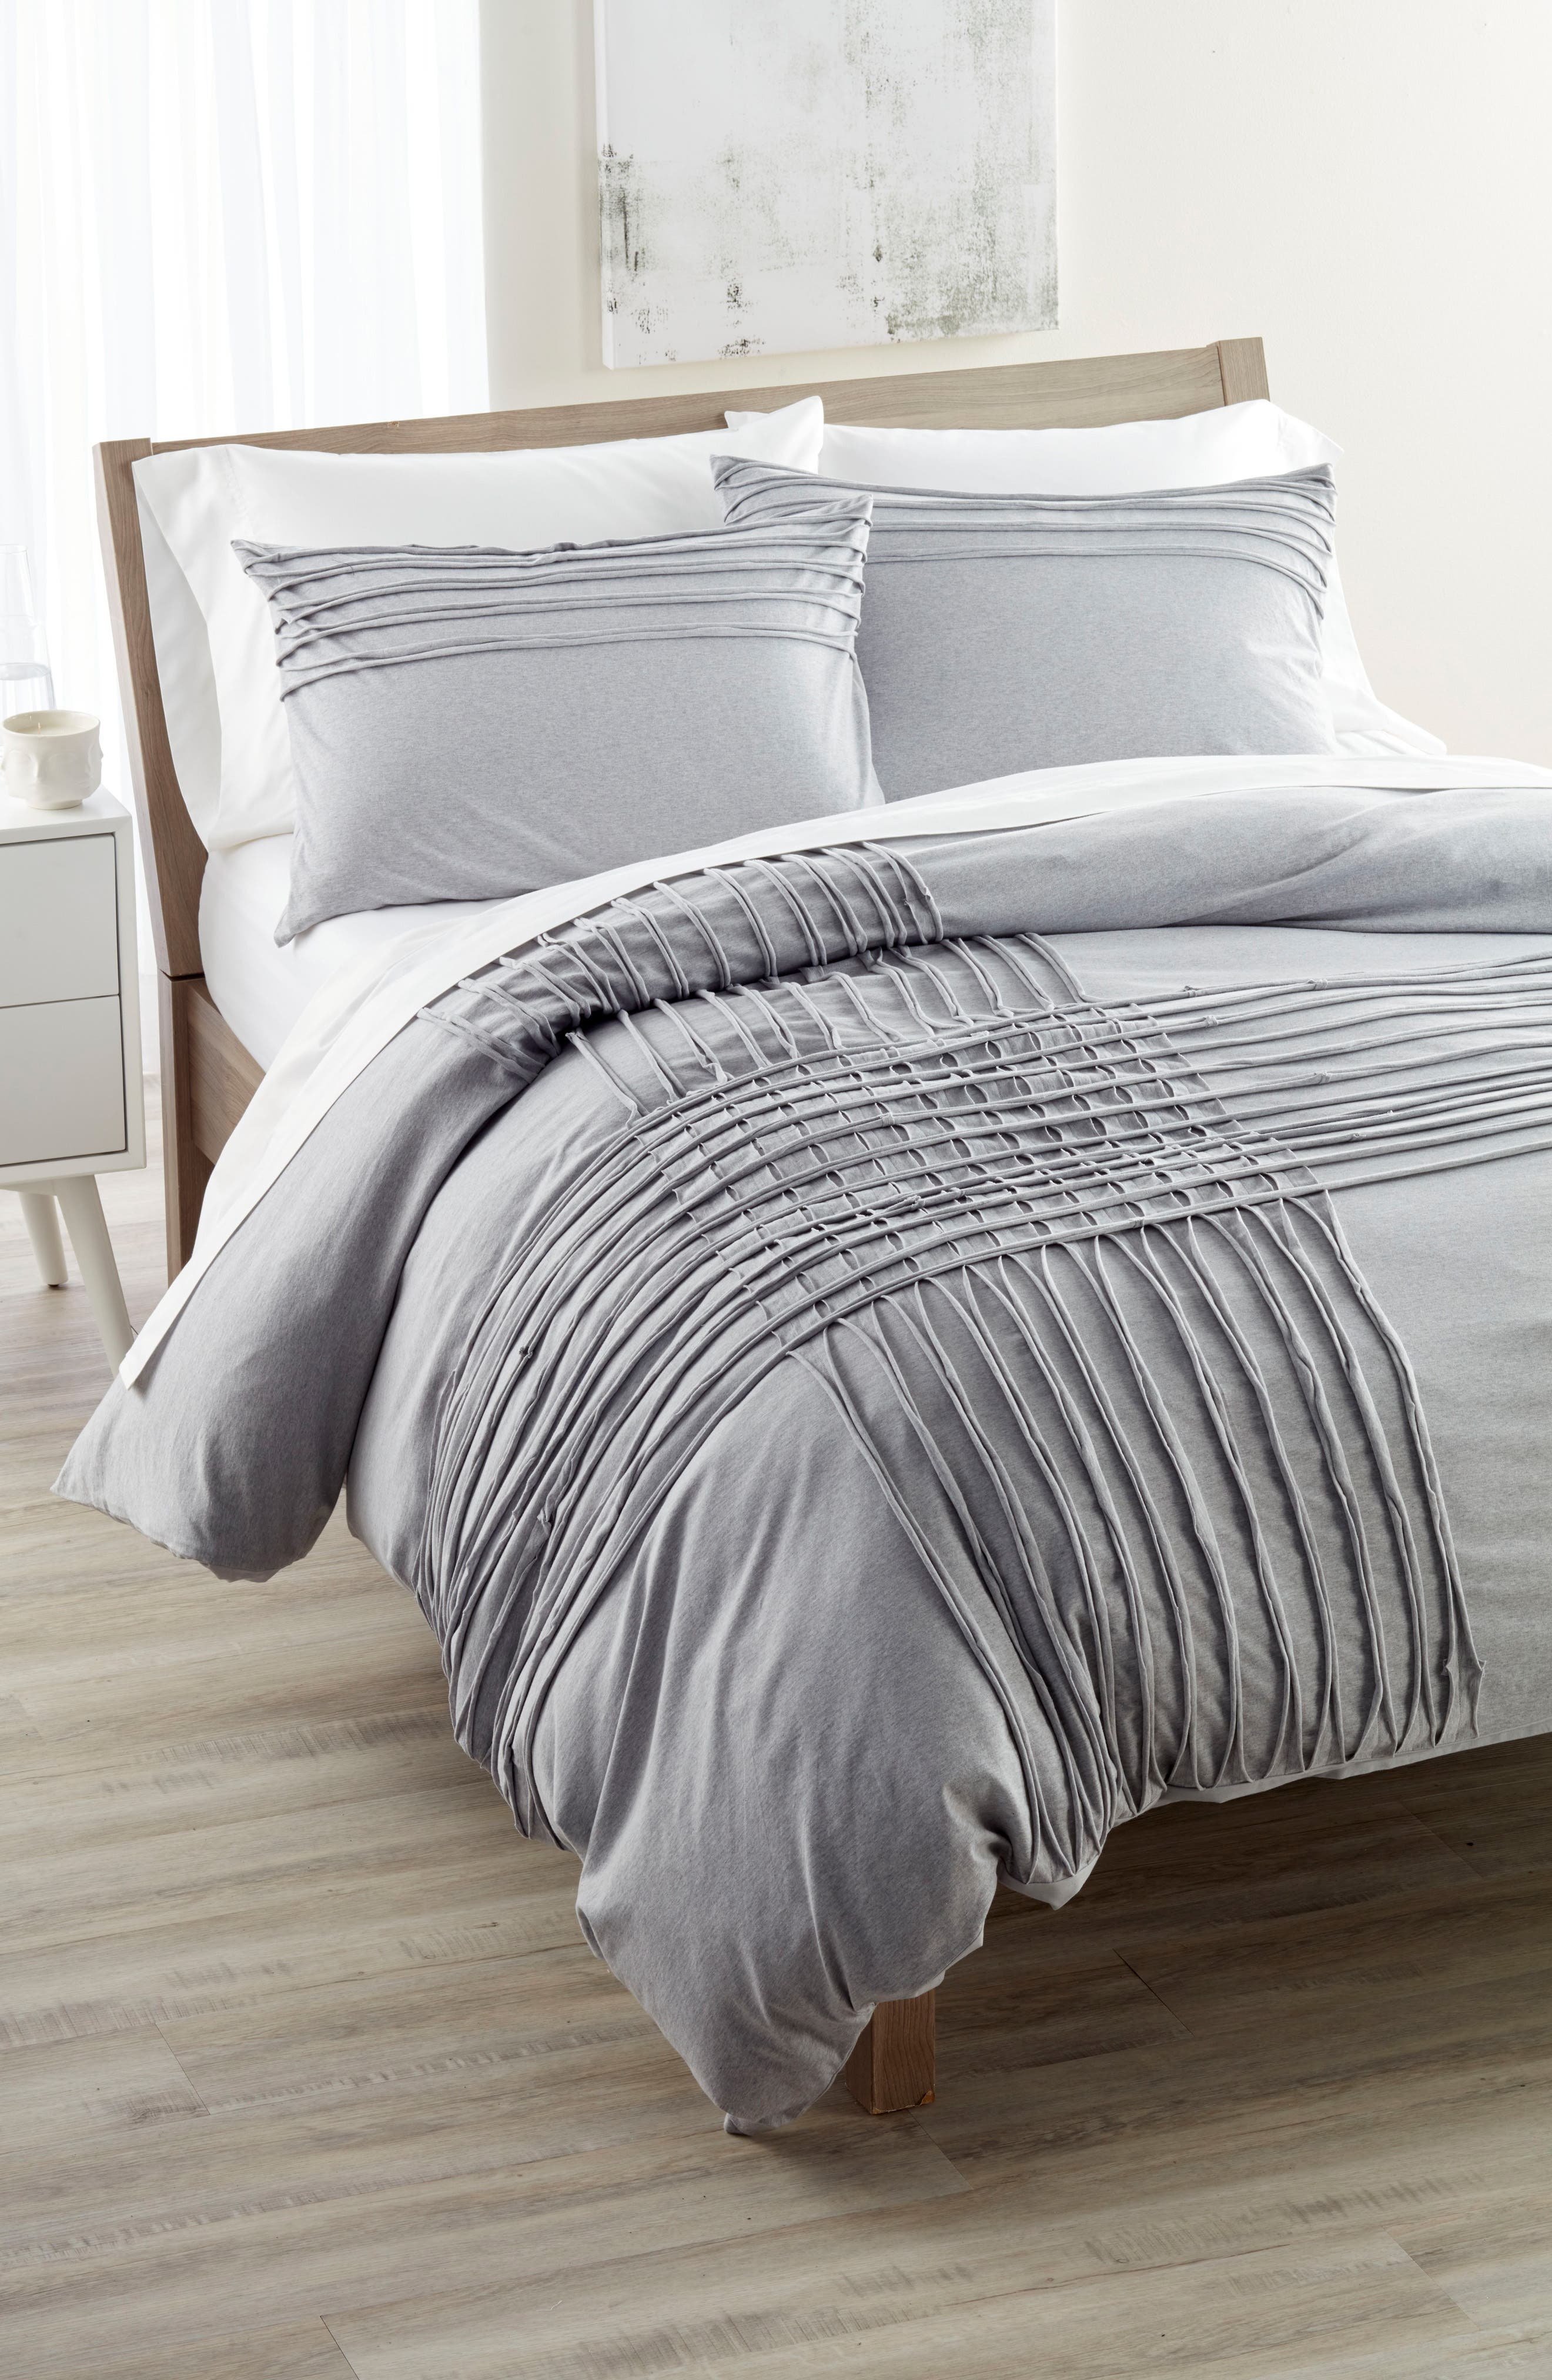 Nordstrom at Home Jersey Grid Bedding Collection